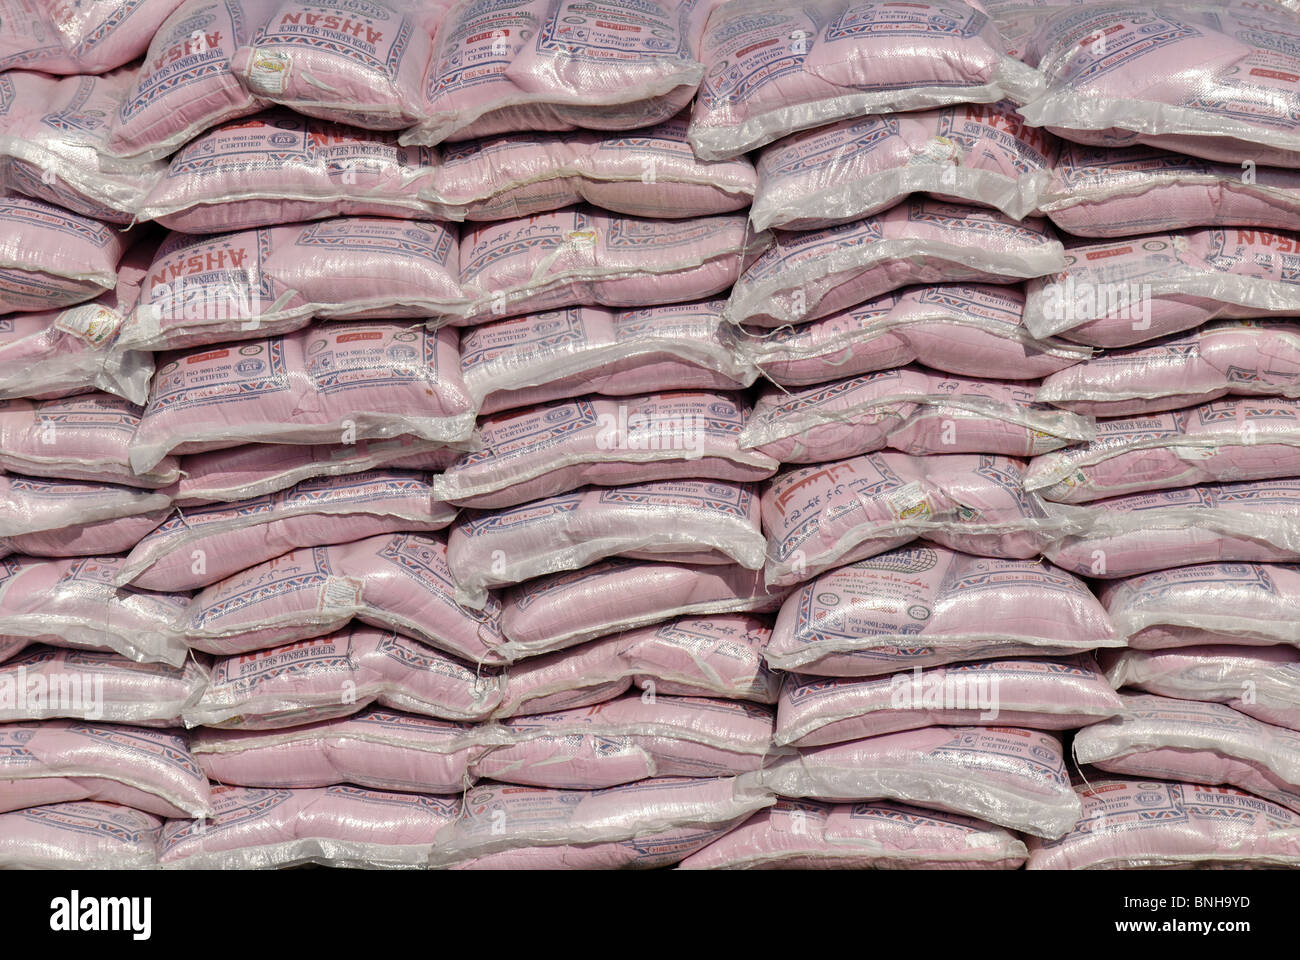 Food Feeding auxiliary goods piles large amounts of rice bags emirate Sharjah Arabia Arabic Dubai eating trade commerce - Stock Image